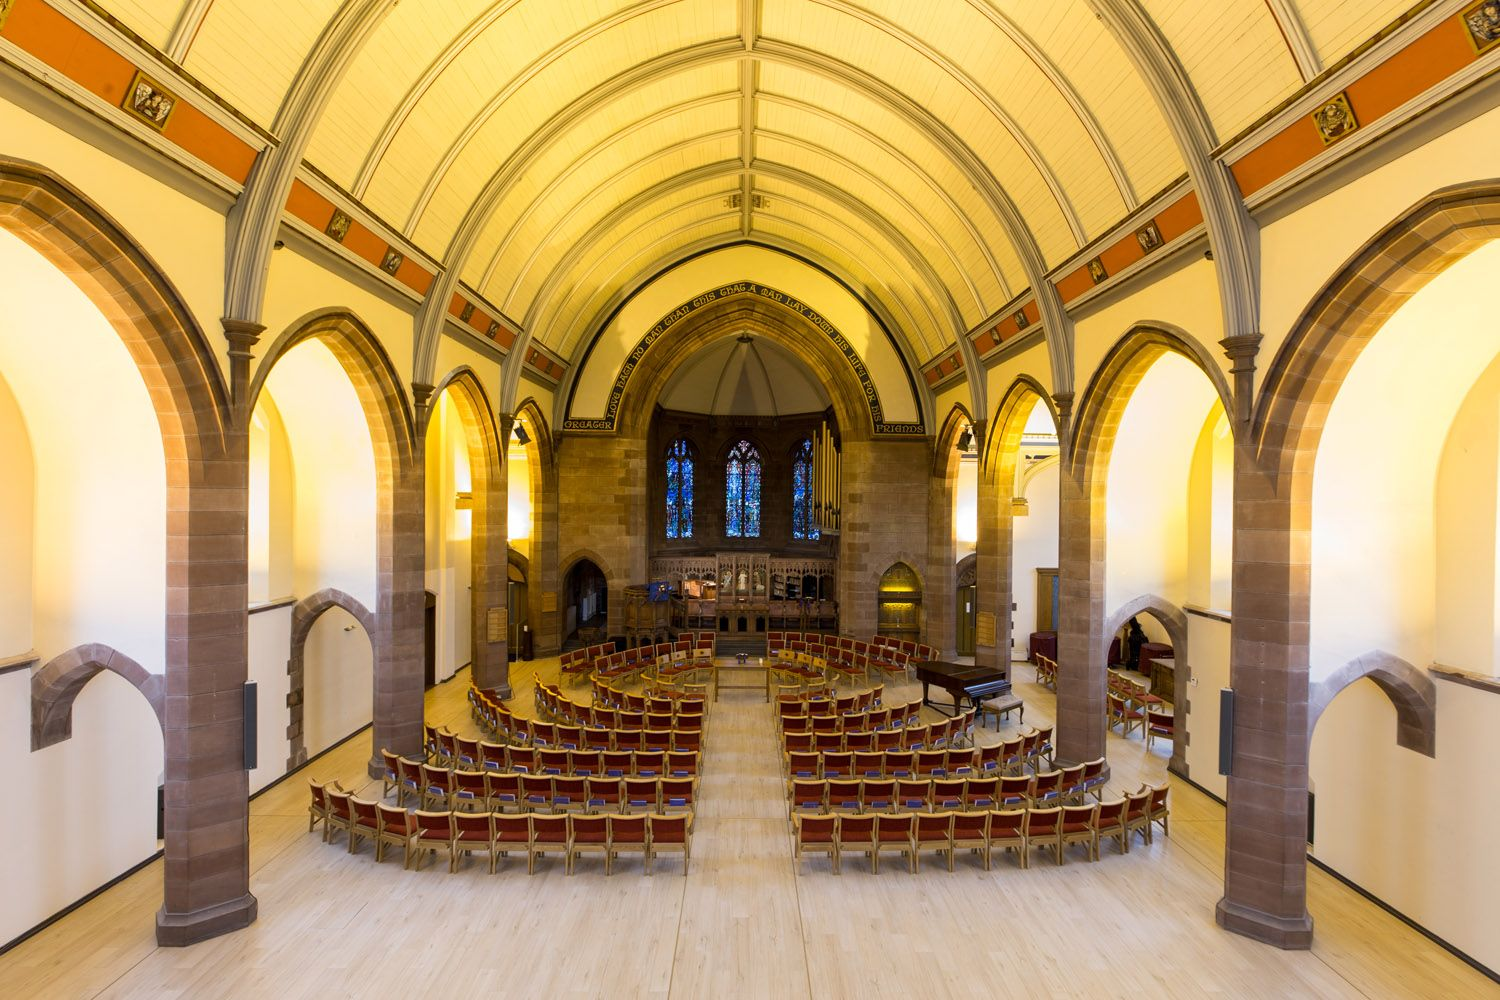 Church refurbishment and renovation featuring wood floor tiles church refurbishment and renovation featuring wood floor tiles solus ceramics in scotland dailygadgetfo Images